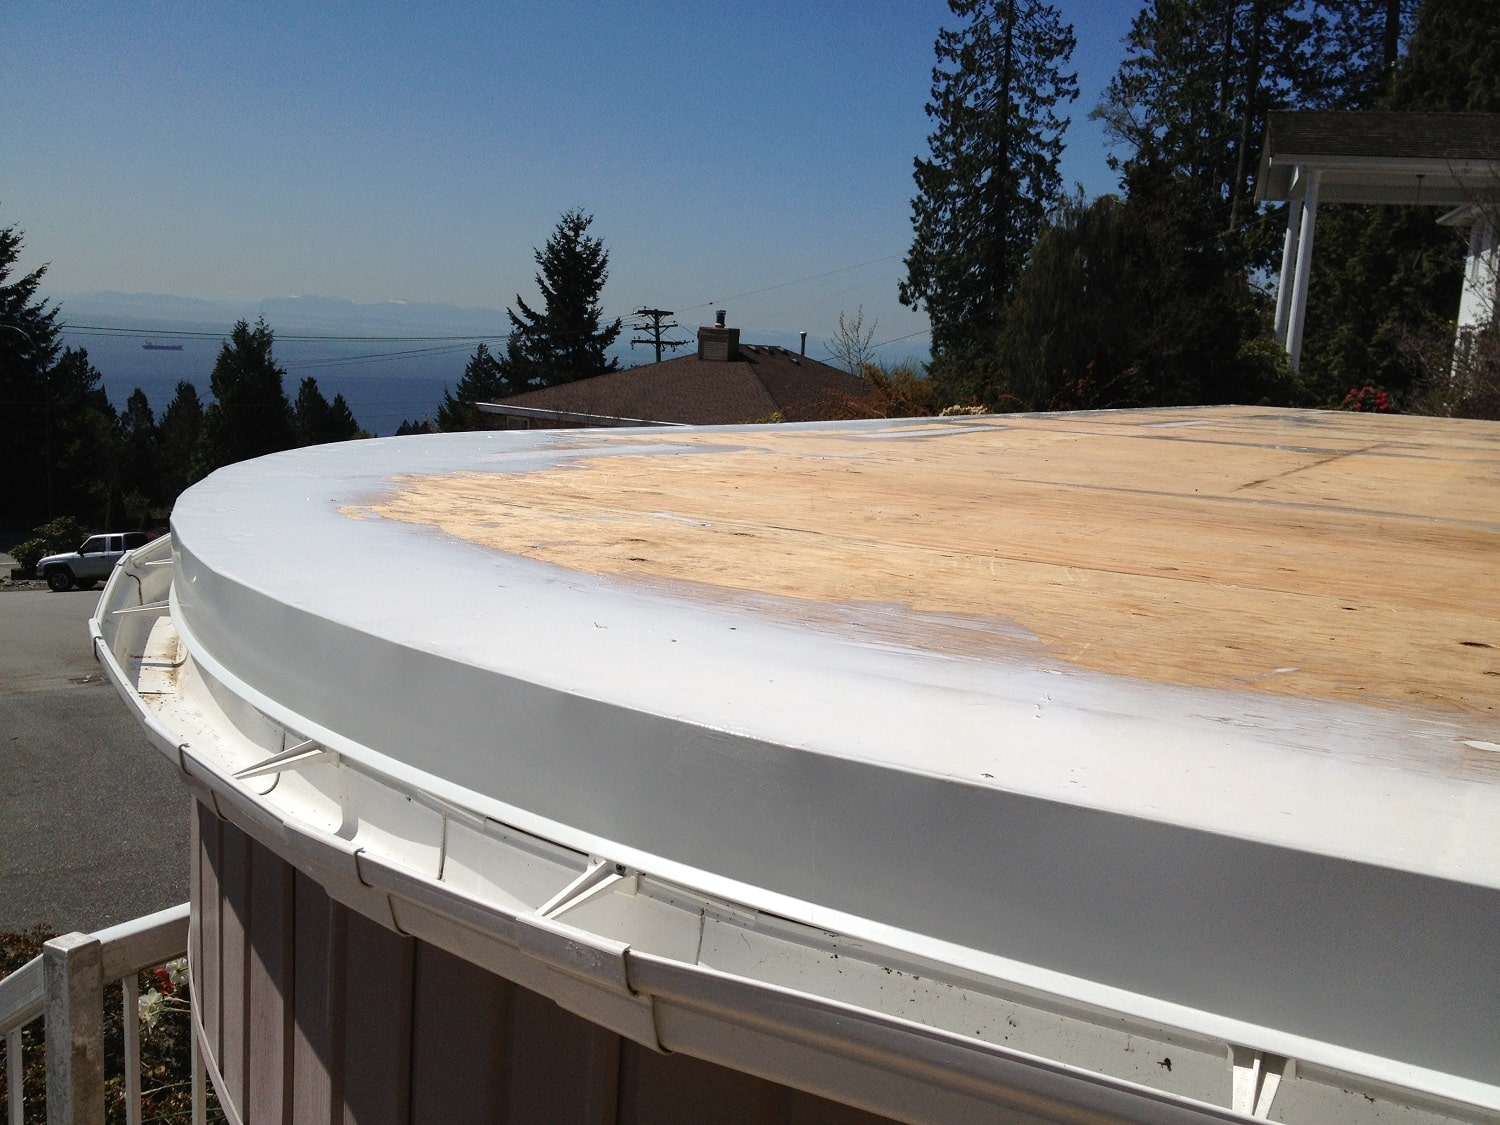 Waterproof Membrane For Balcony : Waterproof membrane vancouver new port dry deck